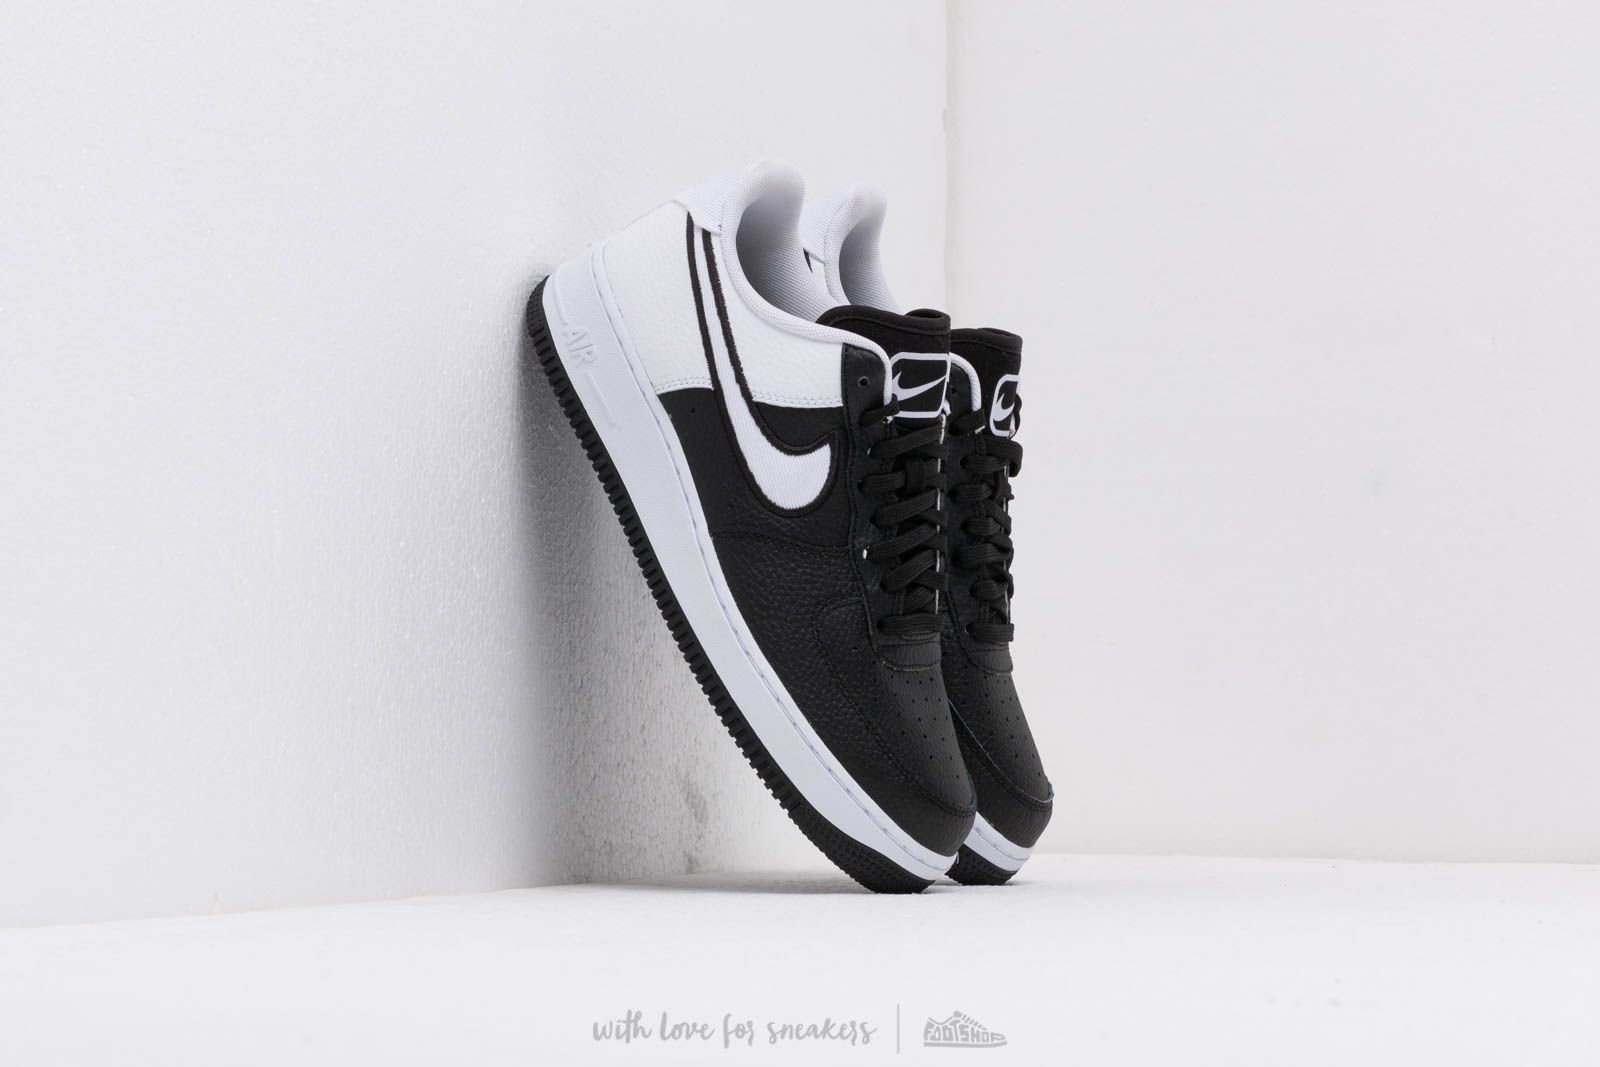 818c3ddd0e6b7 Nike Air Force 1  07 Lv8 1 Black  White at a great price 103